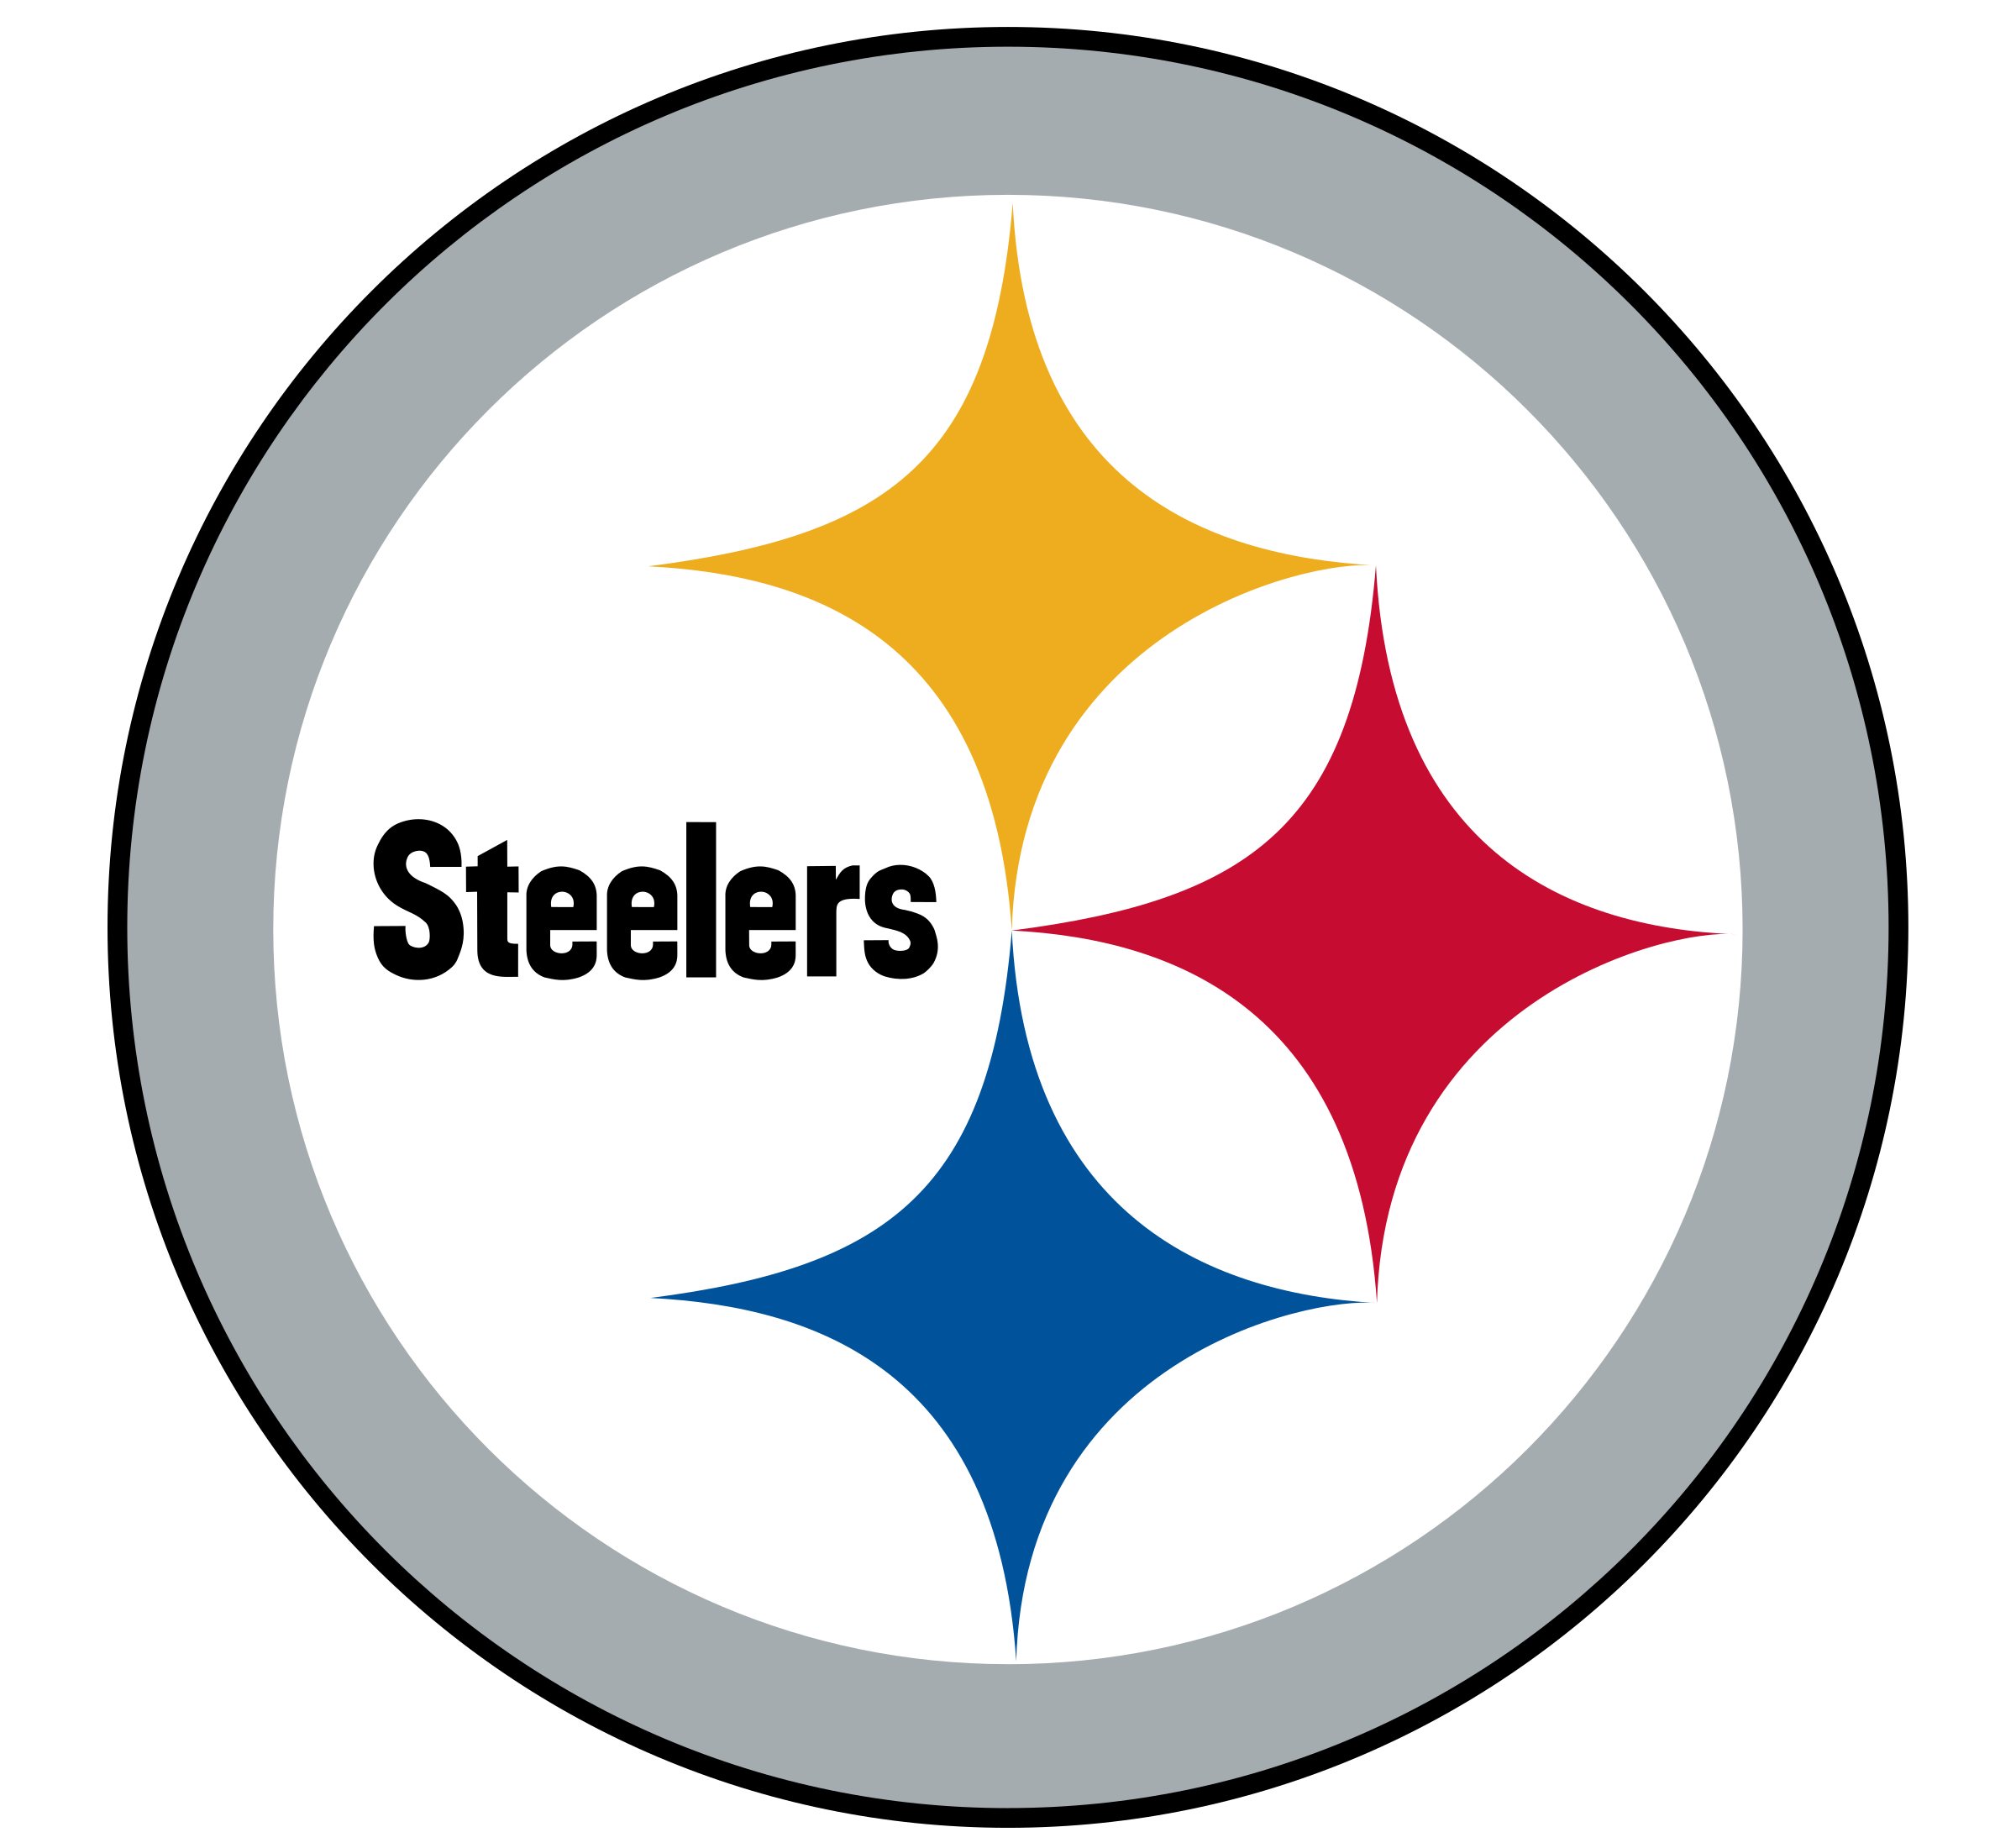 pittsburgh-steelers-logo-transparent[1].png